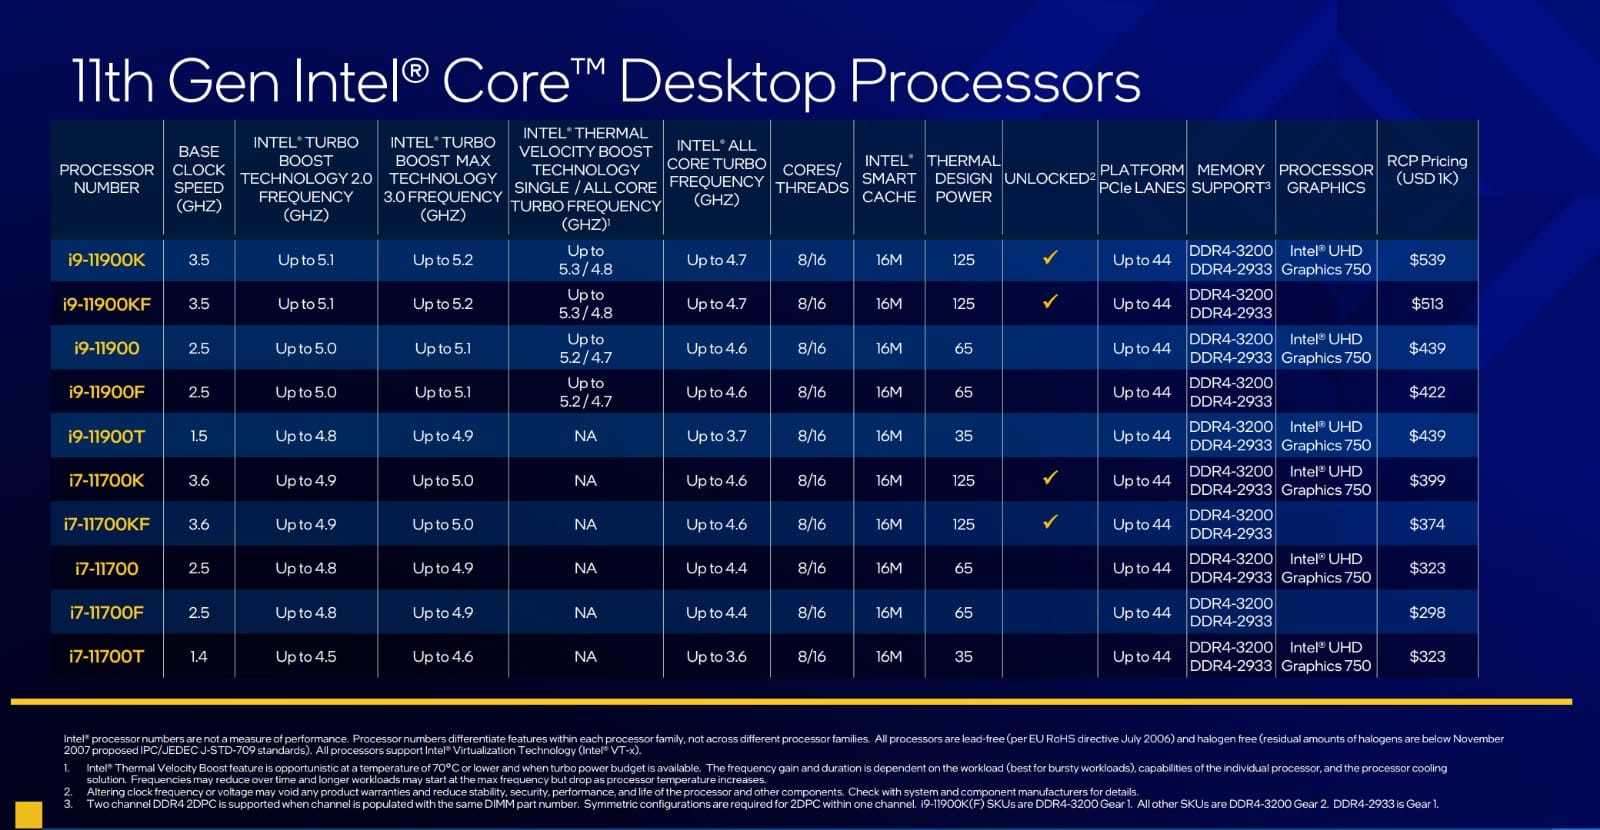 Intel Gen 11 Desktop Processors